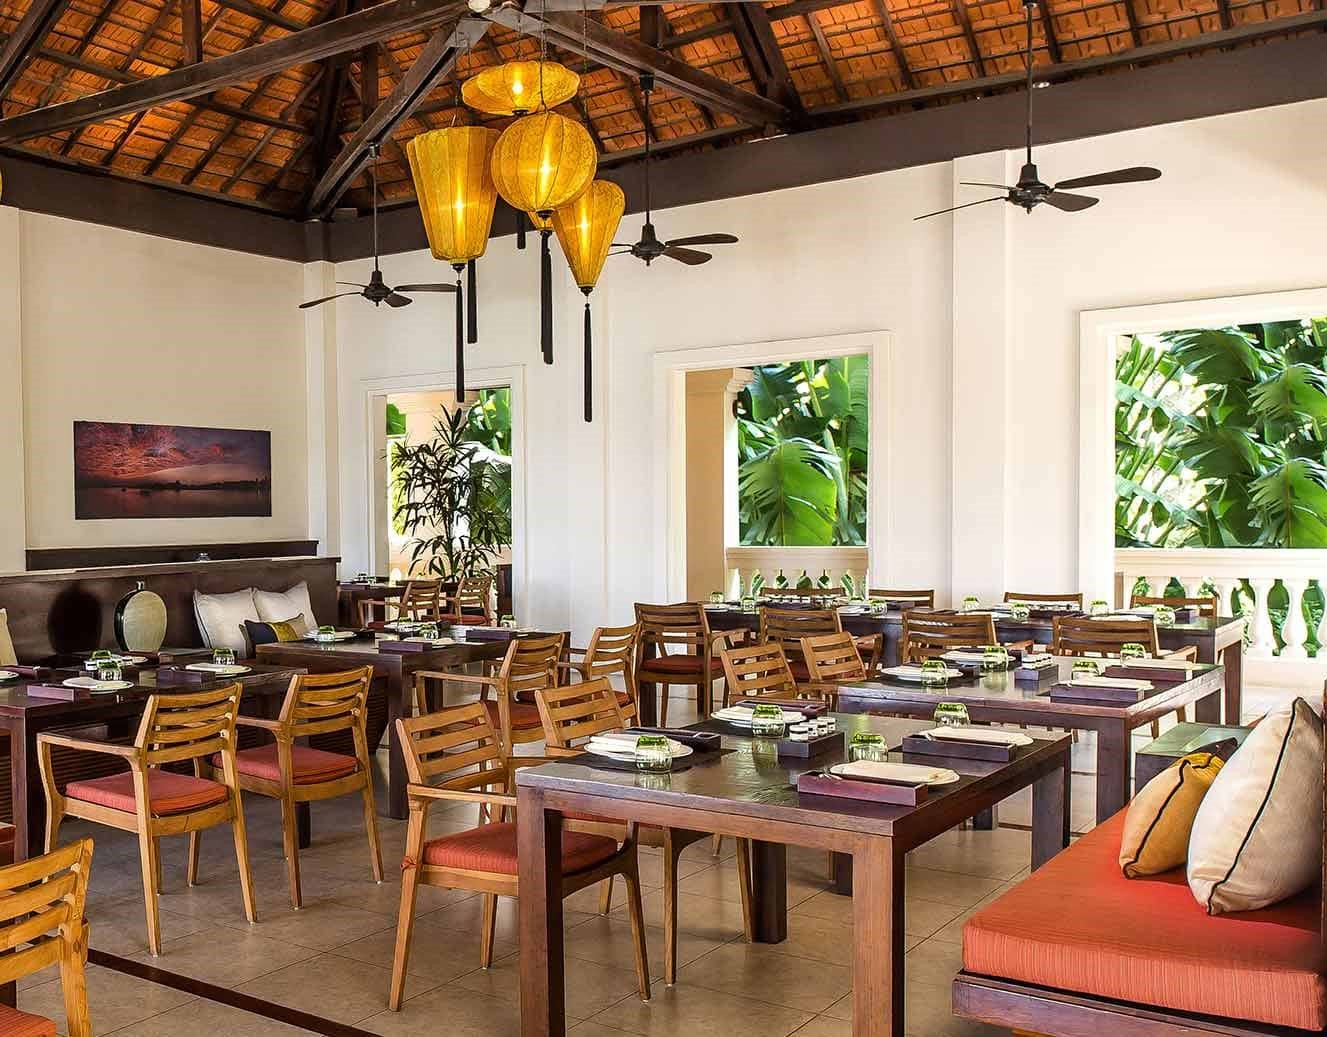 Ideal place to enjoy breakfast in Hoi An